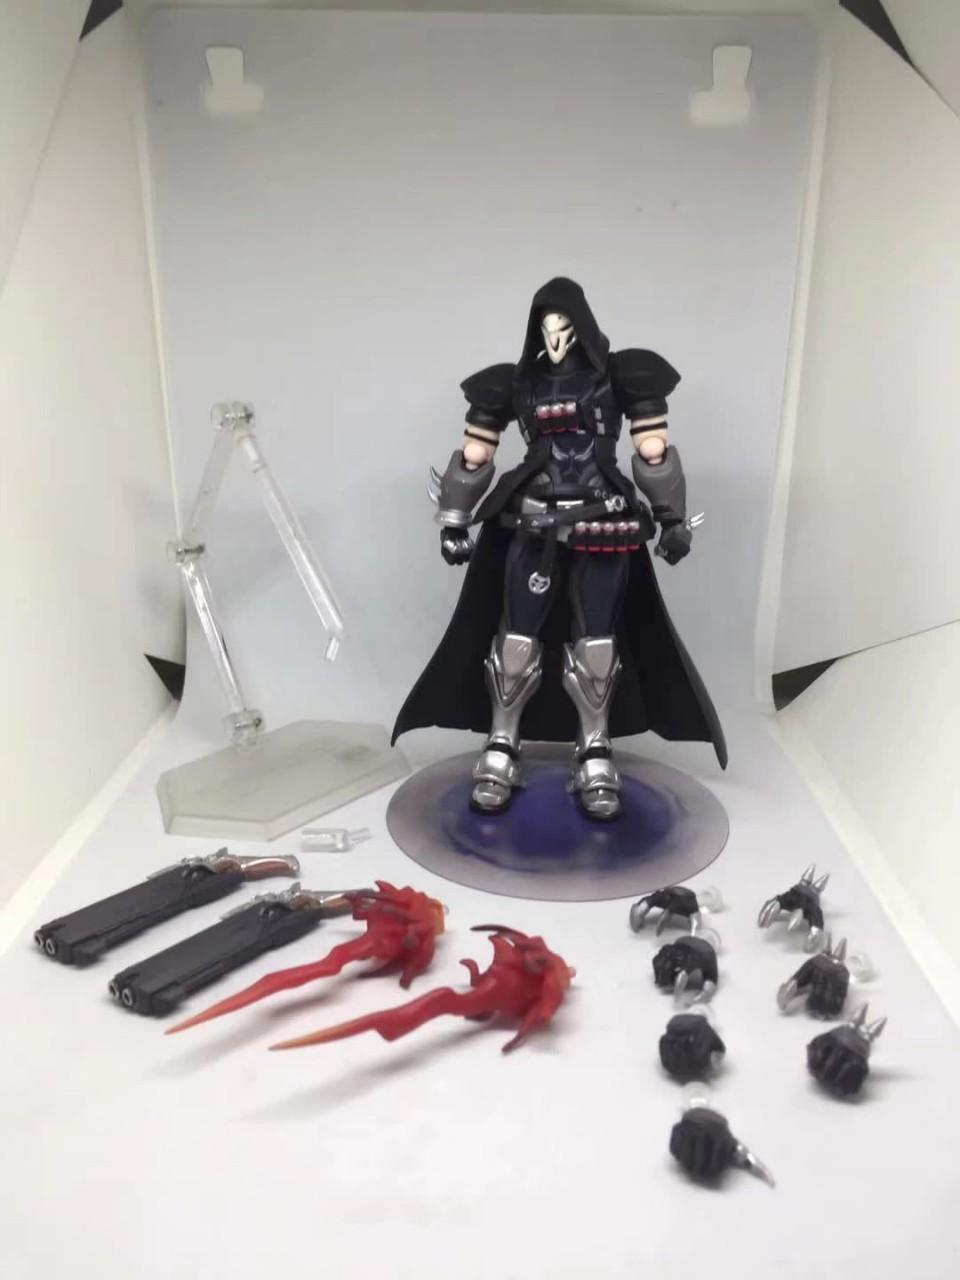 Animated Game around Watch Pioneer Super Movable Figma393 Death Model Hand to Do Doll Decoration